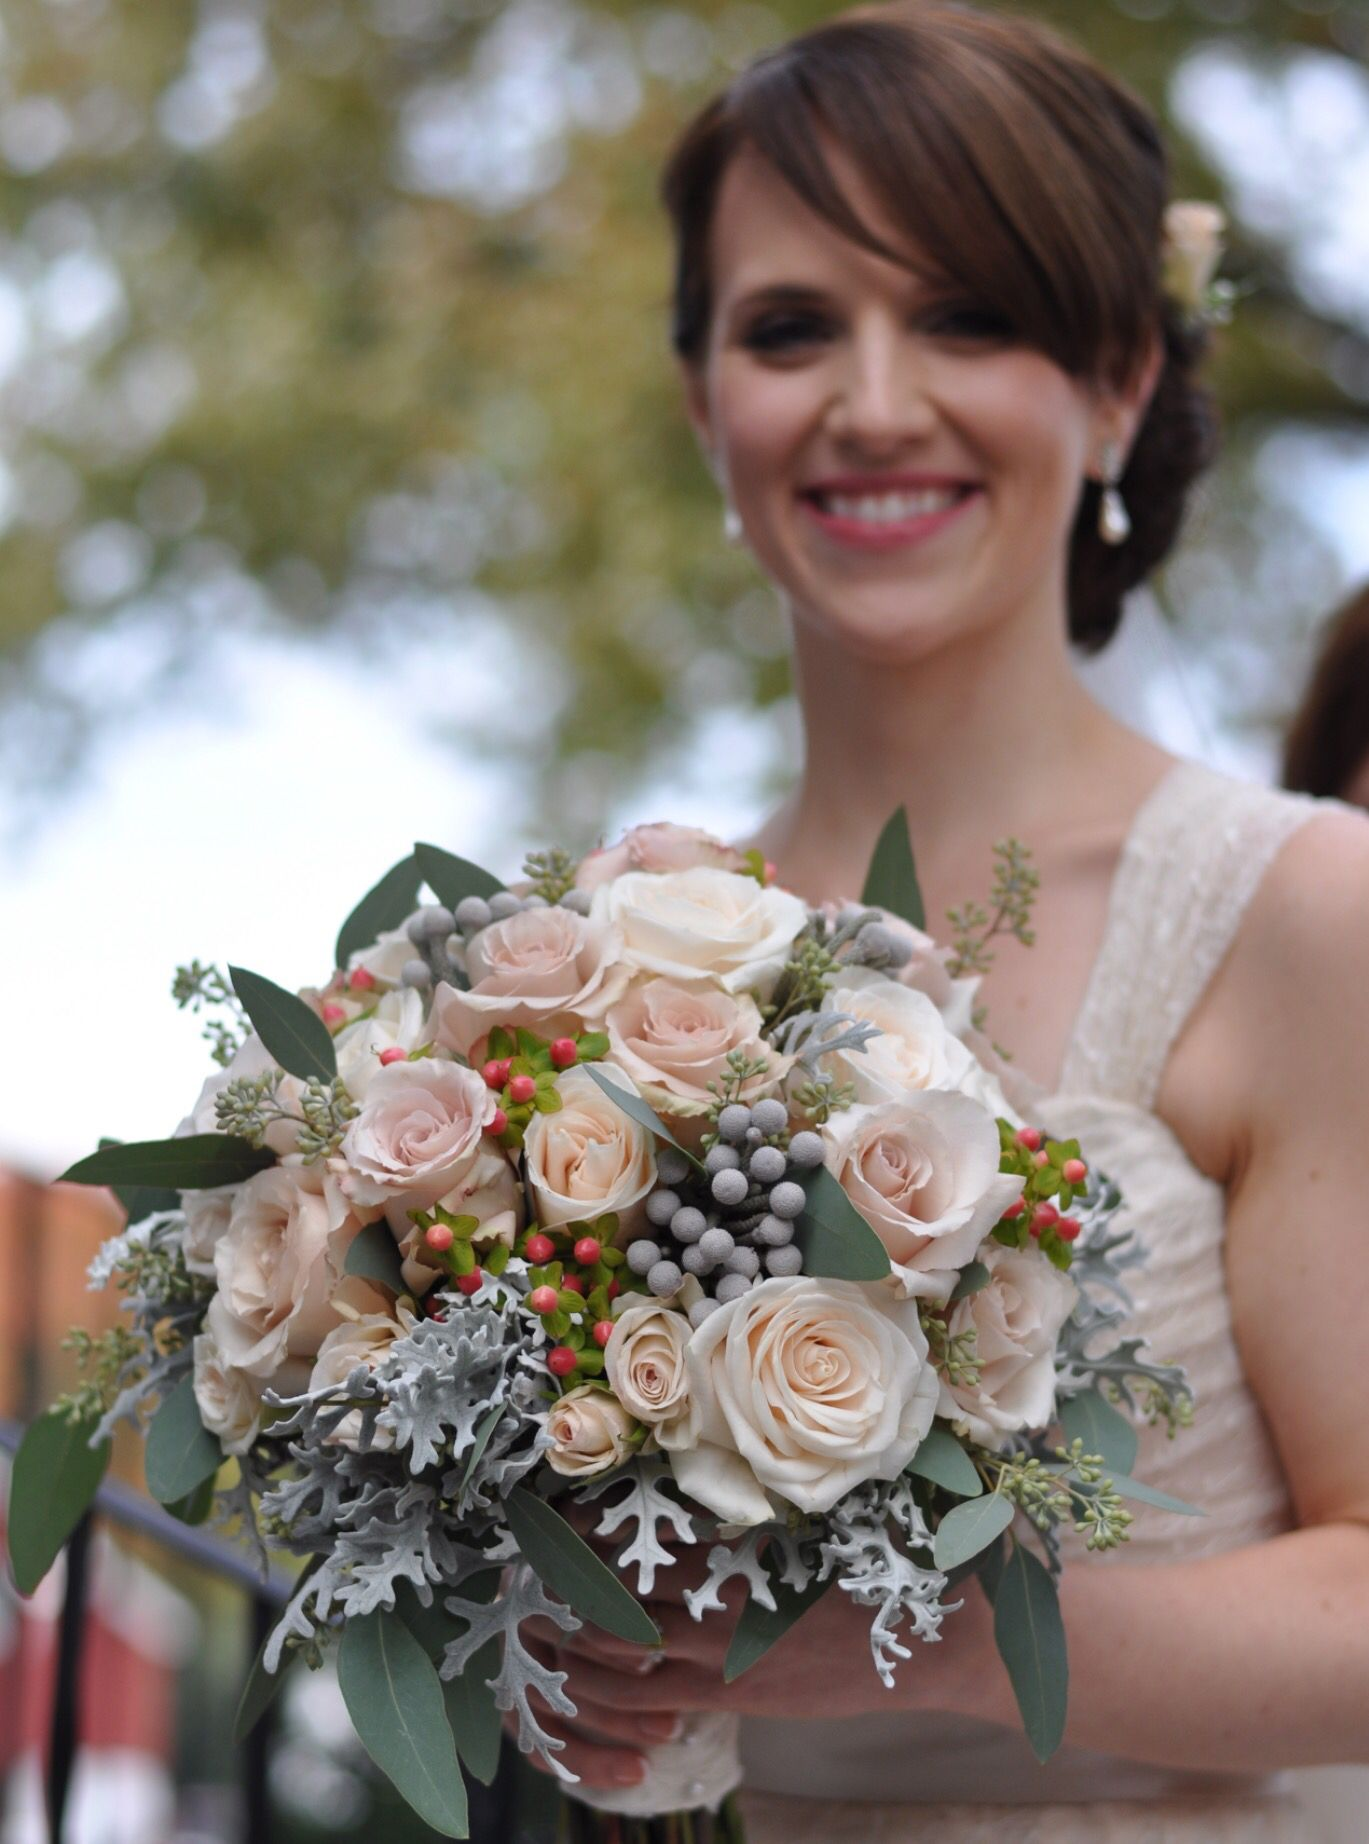 Peach and blush pink roses and stock with gray dusty miller and brunia by Holly's Wedding Flowers.